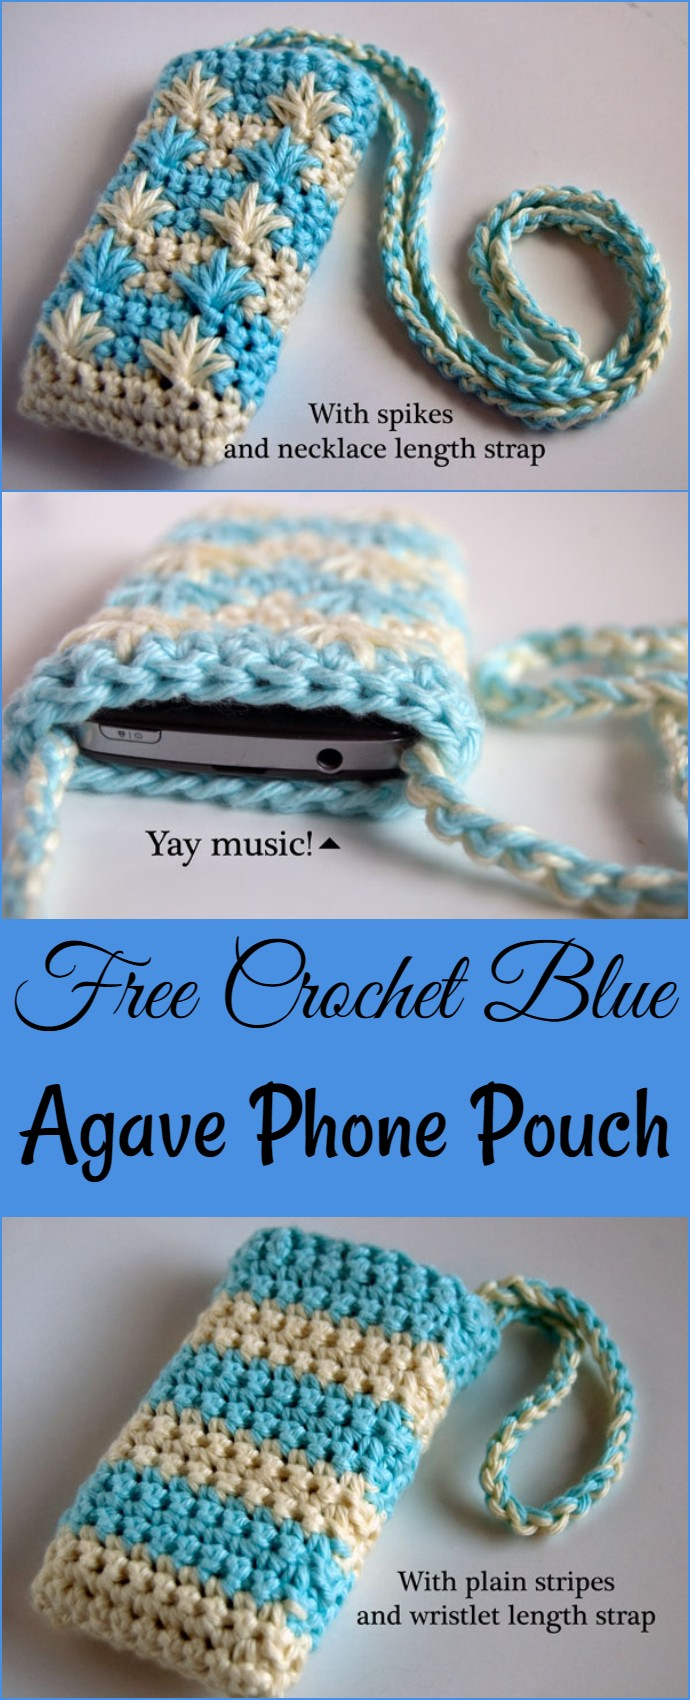 Free Crochet Blue Agave Phone Pouch